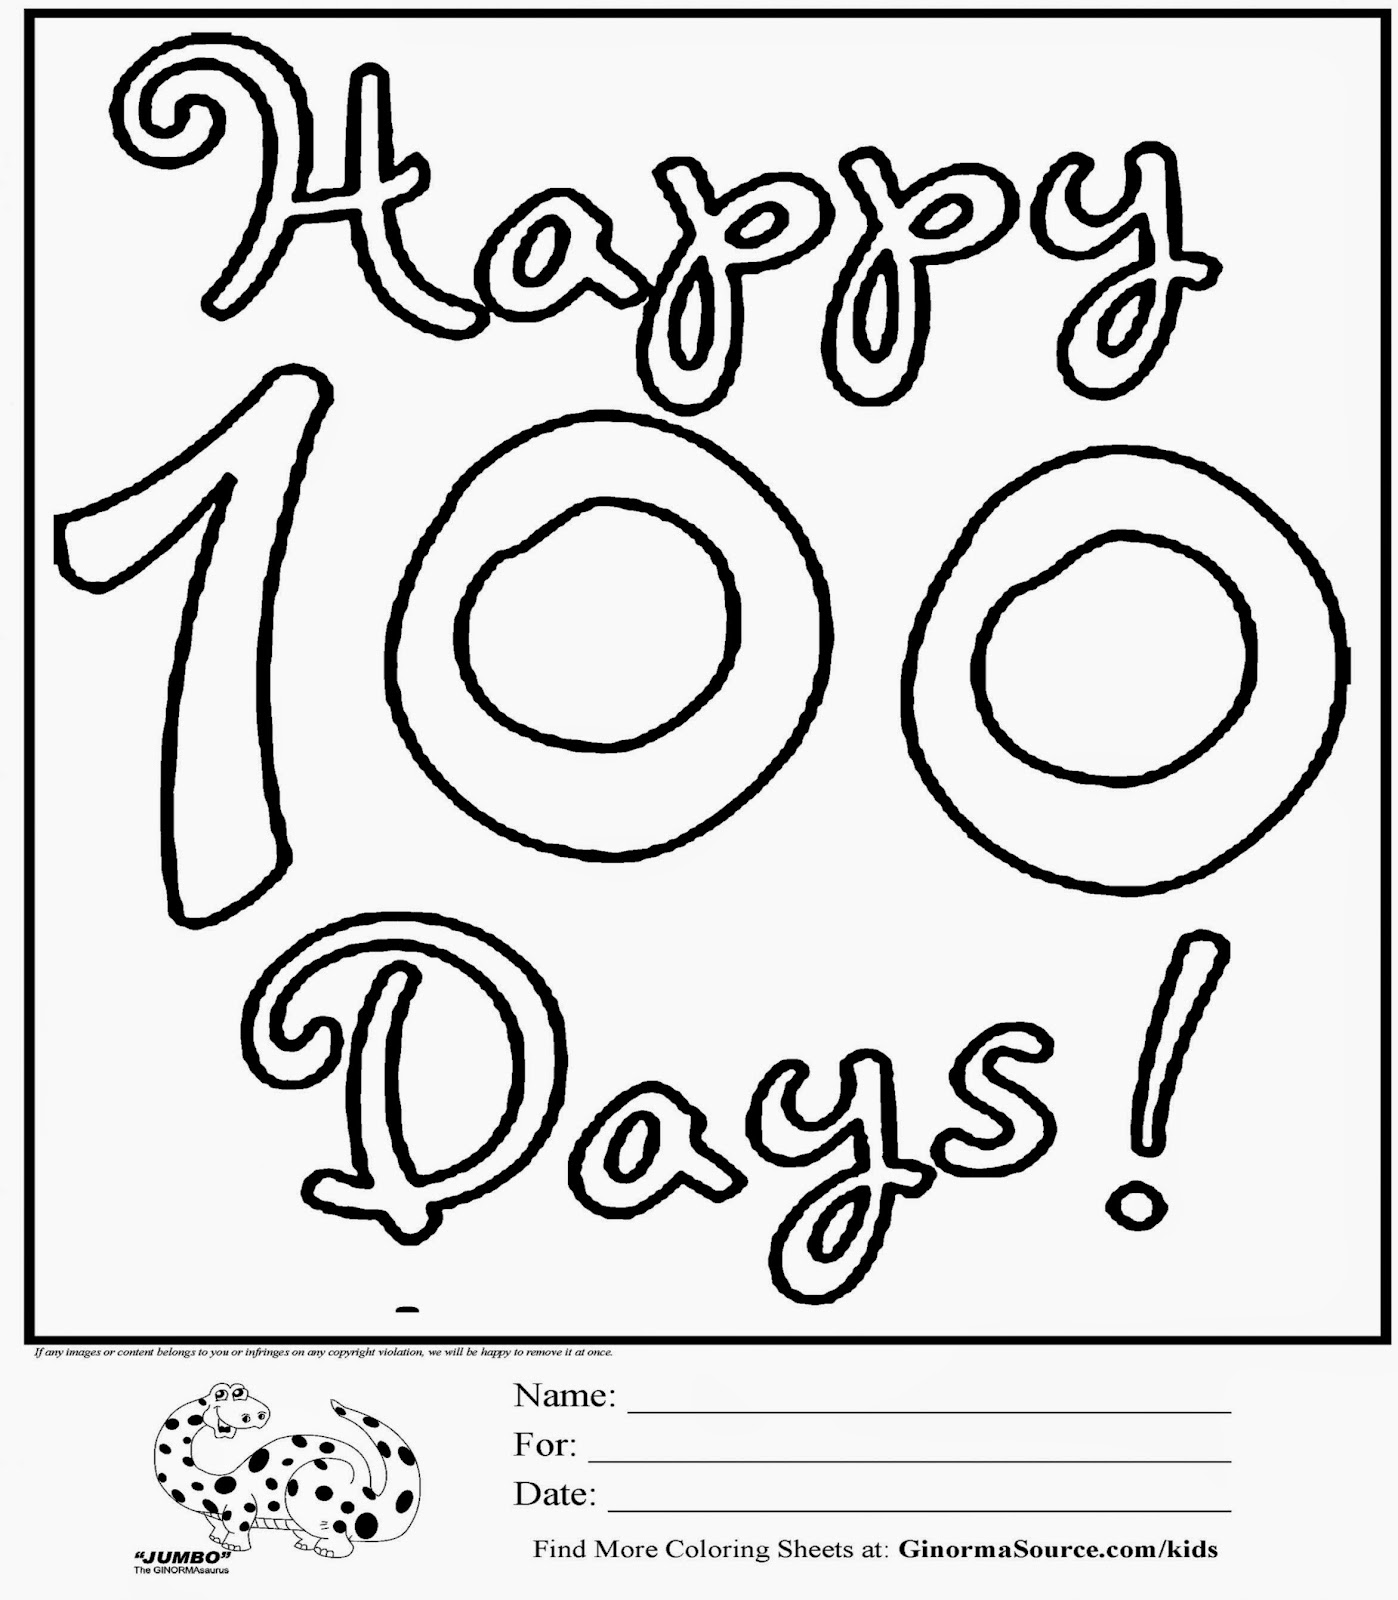 100th day of school crown template 100th day of school coloring sheets free coloring sheet maxwellsz